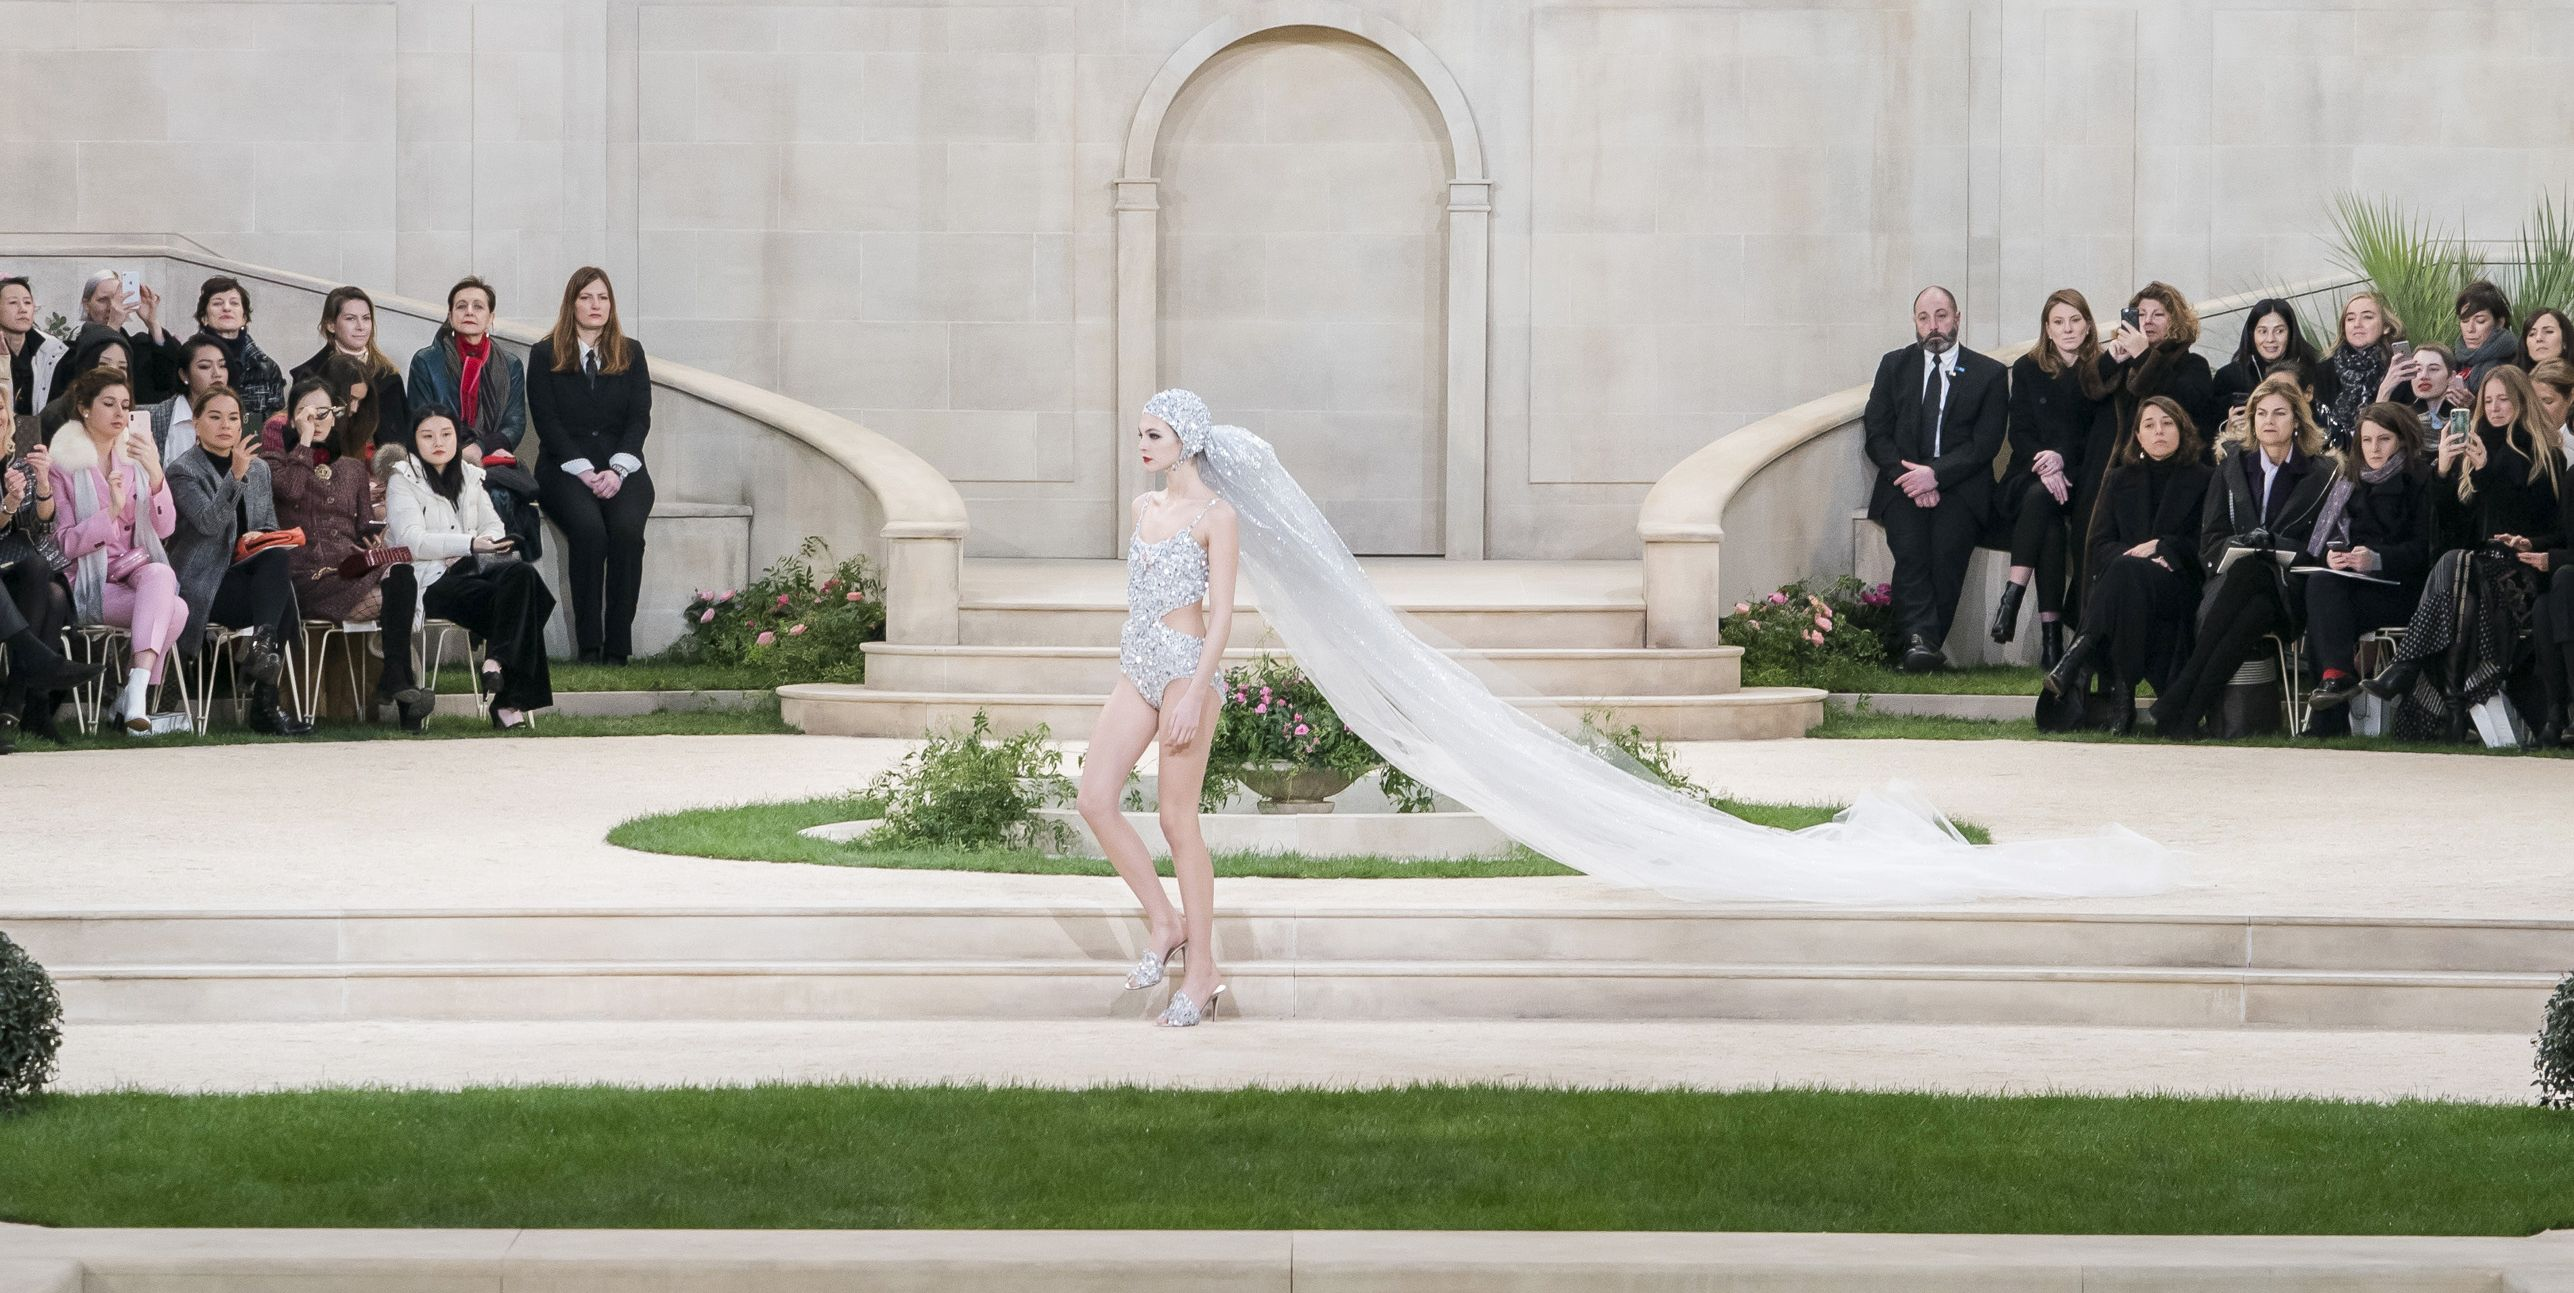 Chanel's Take on The Haute Couture Bride Just Gave Beach Weddings a Whole New Look